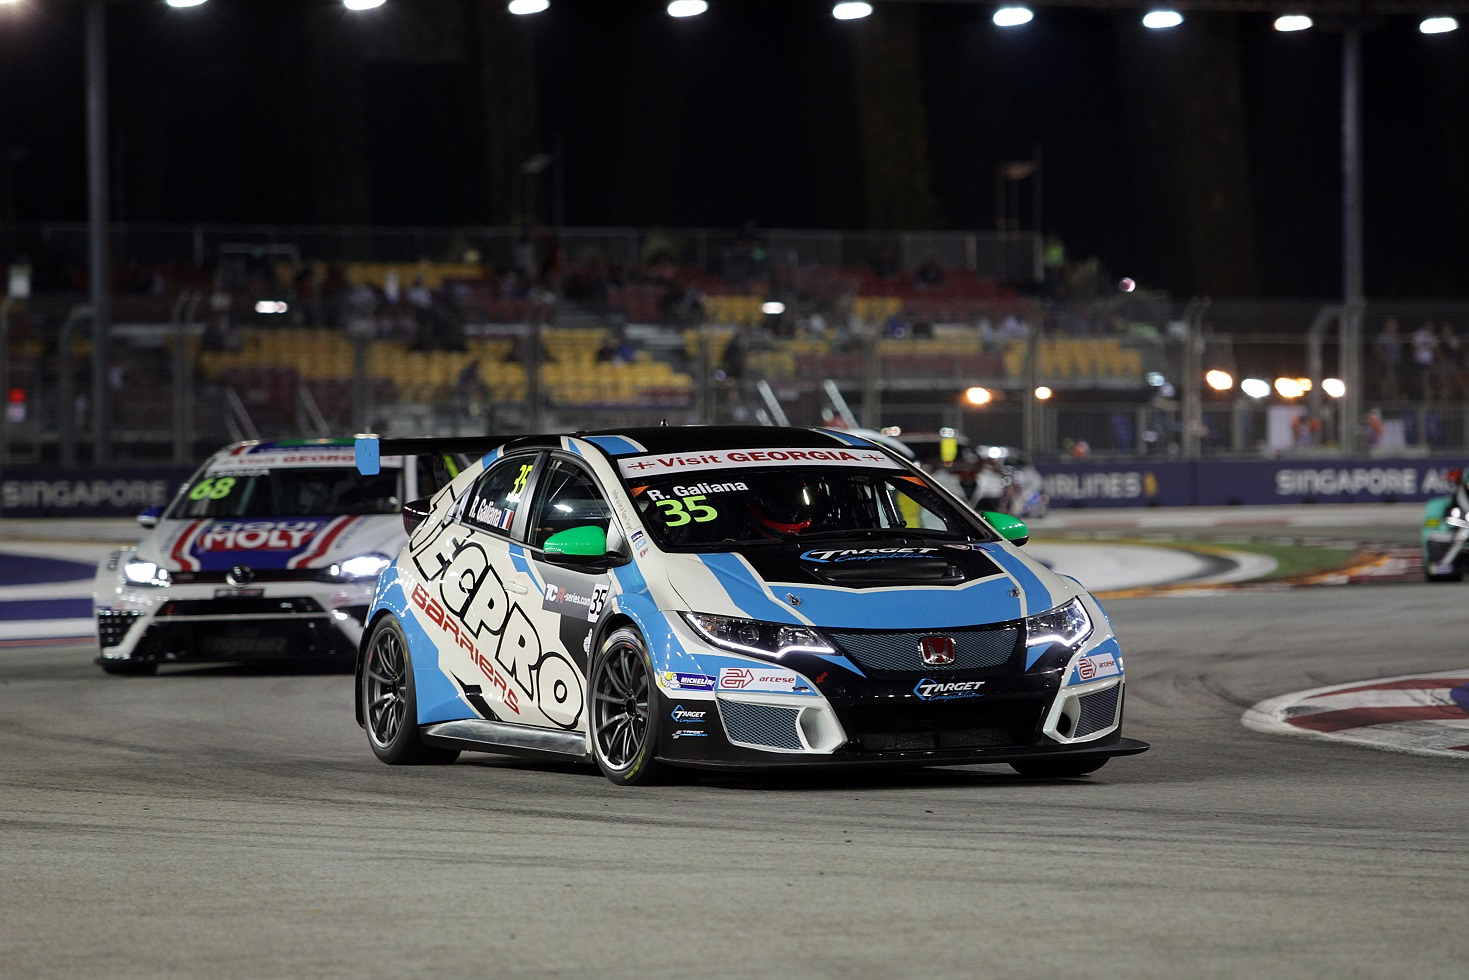 TCR International Series Singapore 16 - 18 September 2016